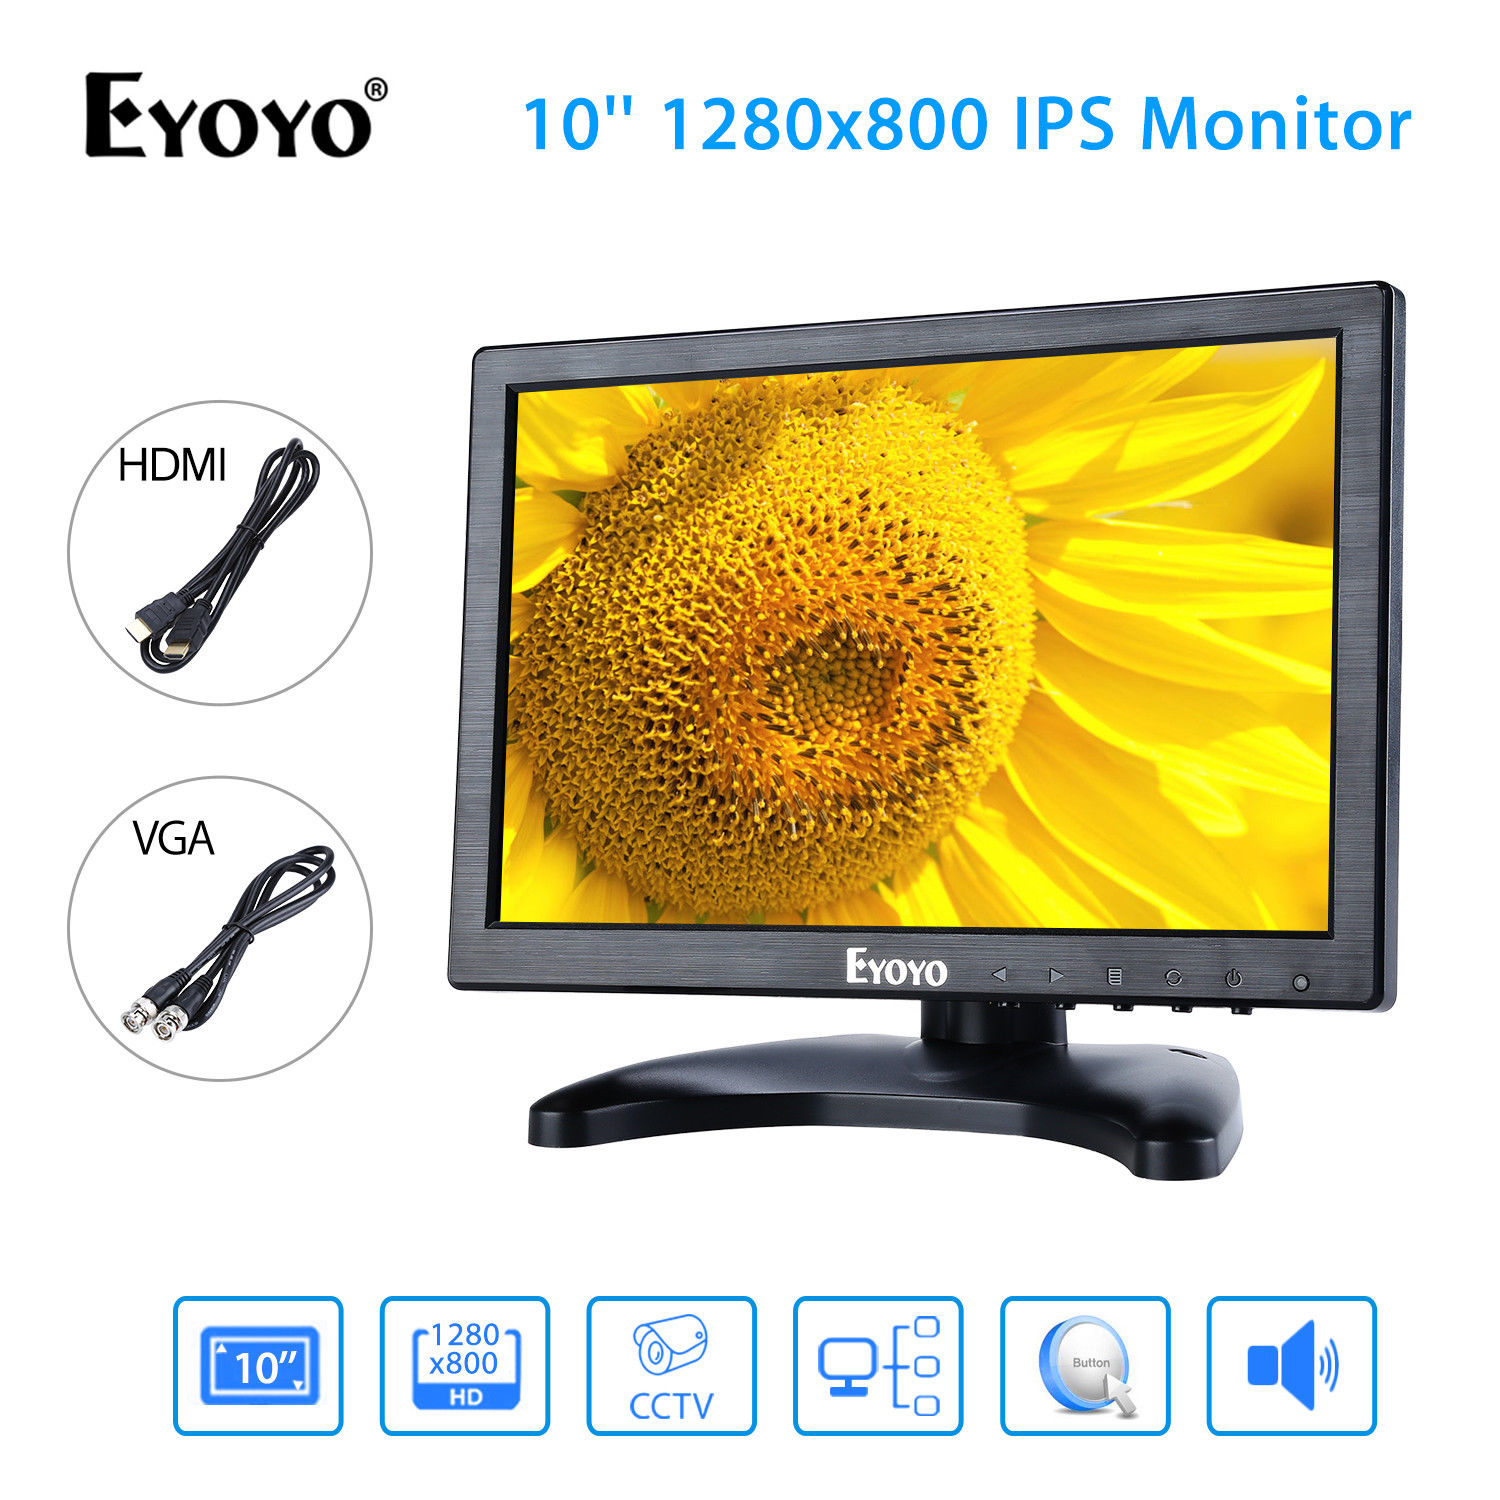 EYOYO H1016 IPS 10'' FHD Display 1280x800 VGA BNC USB Video Audio AV HDMI Monitor Black For CCTV DVD PC Laptop DVR CCD Camera мобильный телефон philips xenium e168 черный 2 4